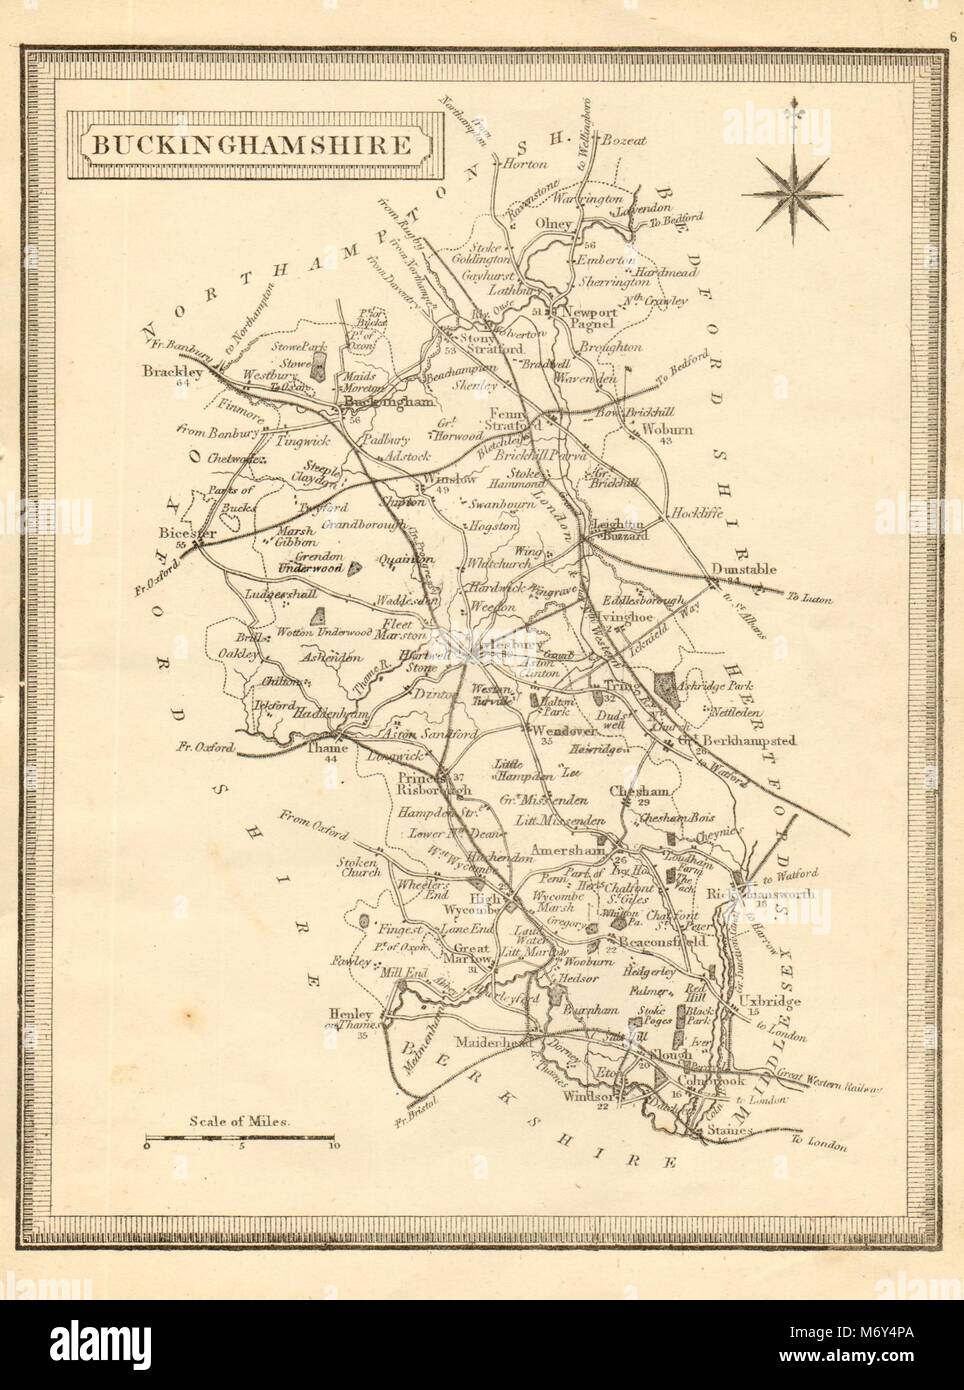 Antique County Map Of Buckinghamshire By John Cary 1787 Old Chart Reasonable Price Maps, Atlases & Globes